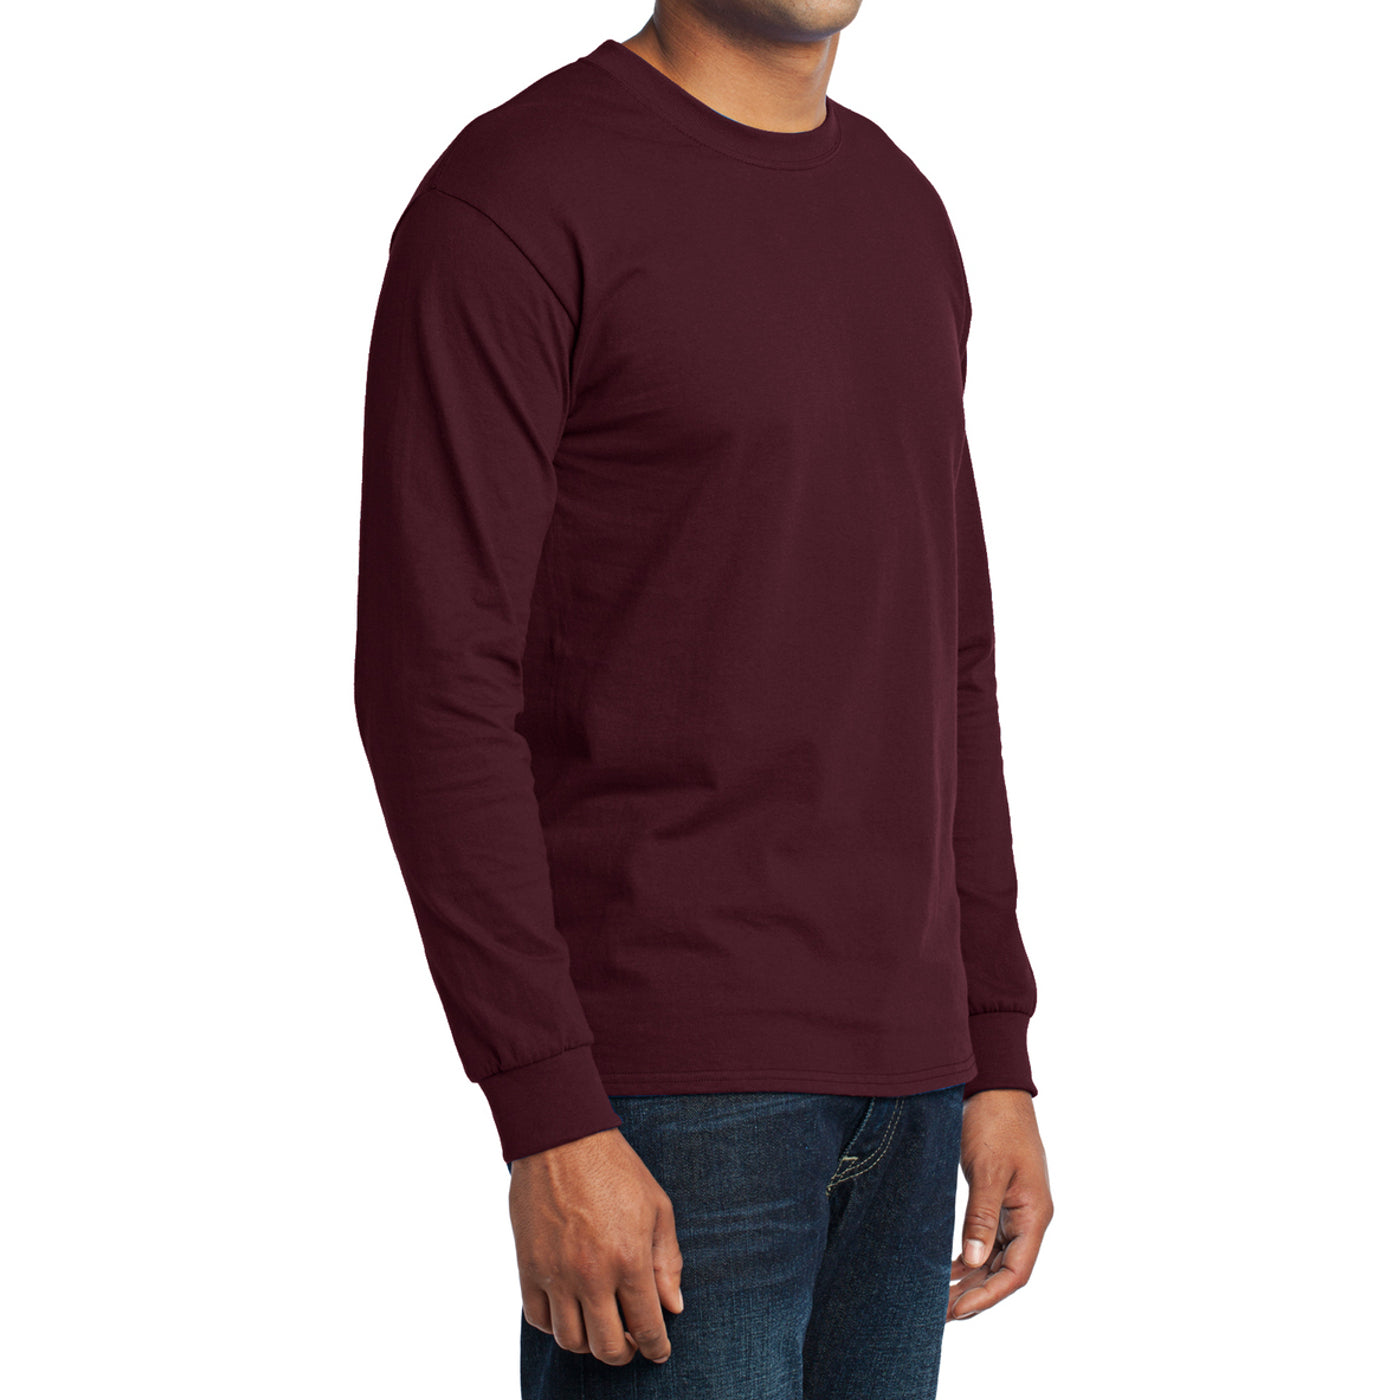 Men's Long Sleeve Core Blend Tee - Athletic Maroon – Side